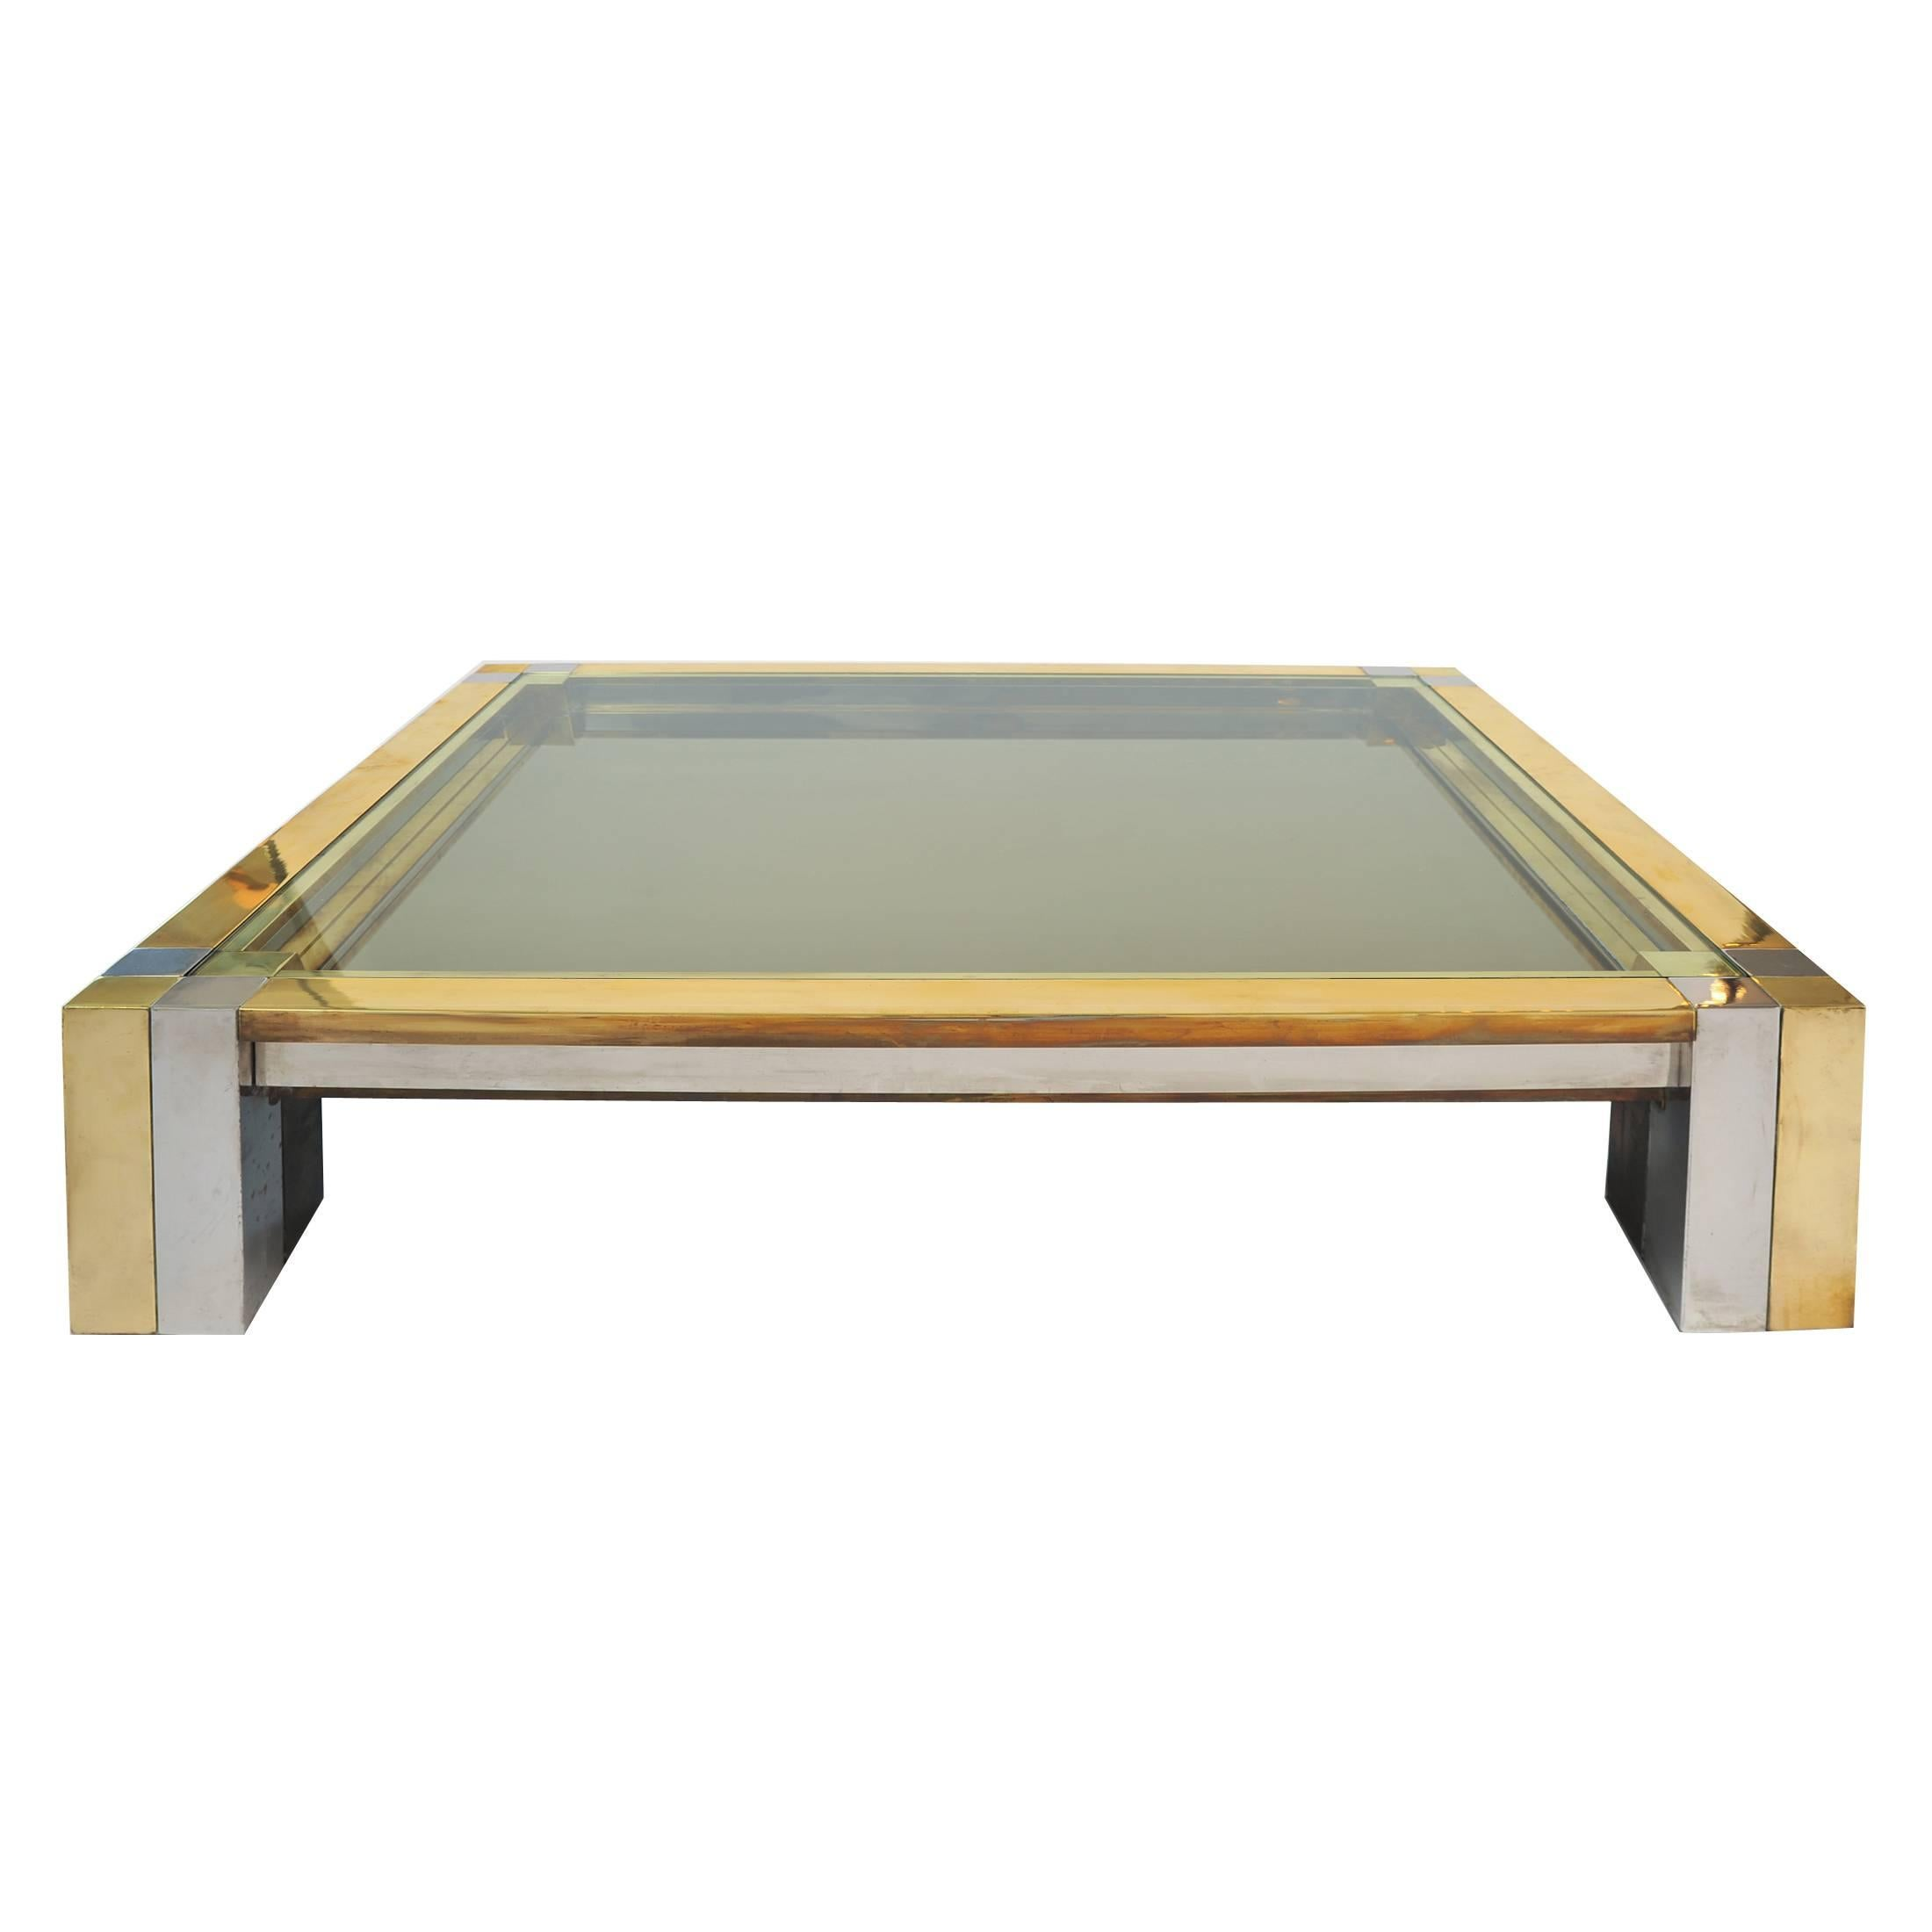 Pair Of Chrome And Glass Coffee Tables, Nucci Valsecchi, Italy,